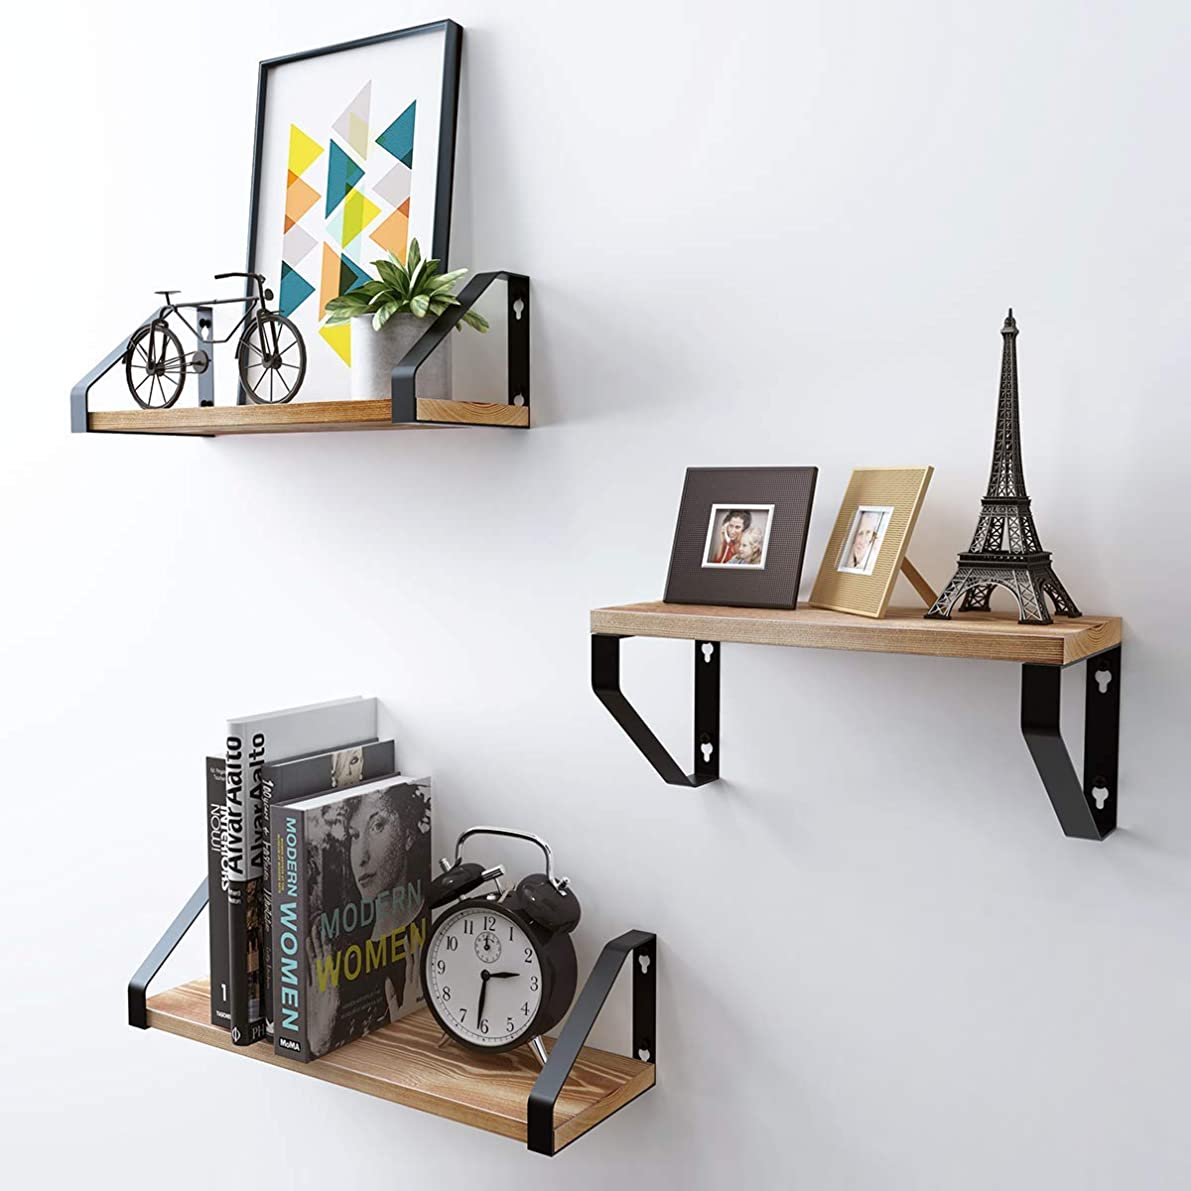 Homemaxs Floating Shelves Wall Mounted Set of 3, Natural Rustic Solid Wood Wall Storage Shelves with 2 Display Modes for Bathroom, Bedroom, Kitchen, Living Room